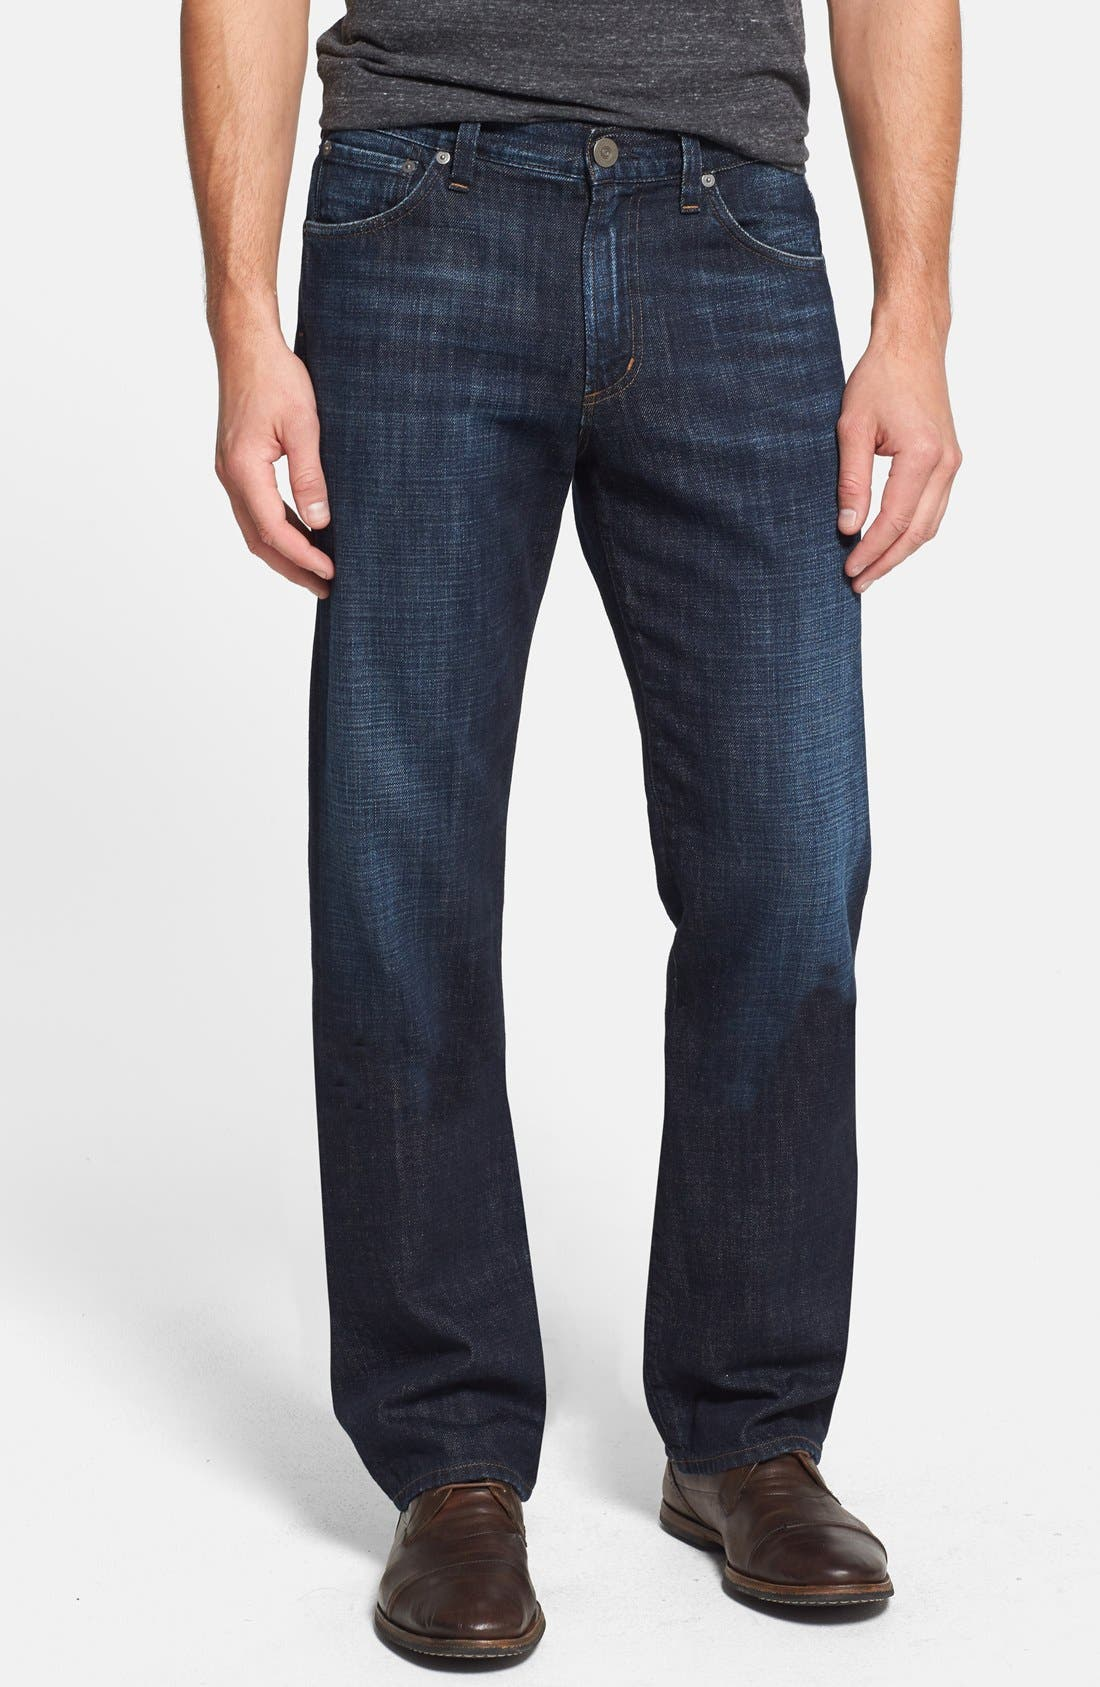 Alternate Image 1 Selected - Citizens of Humanity 'Sid' Straight Leg Jeans (Vermont)